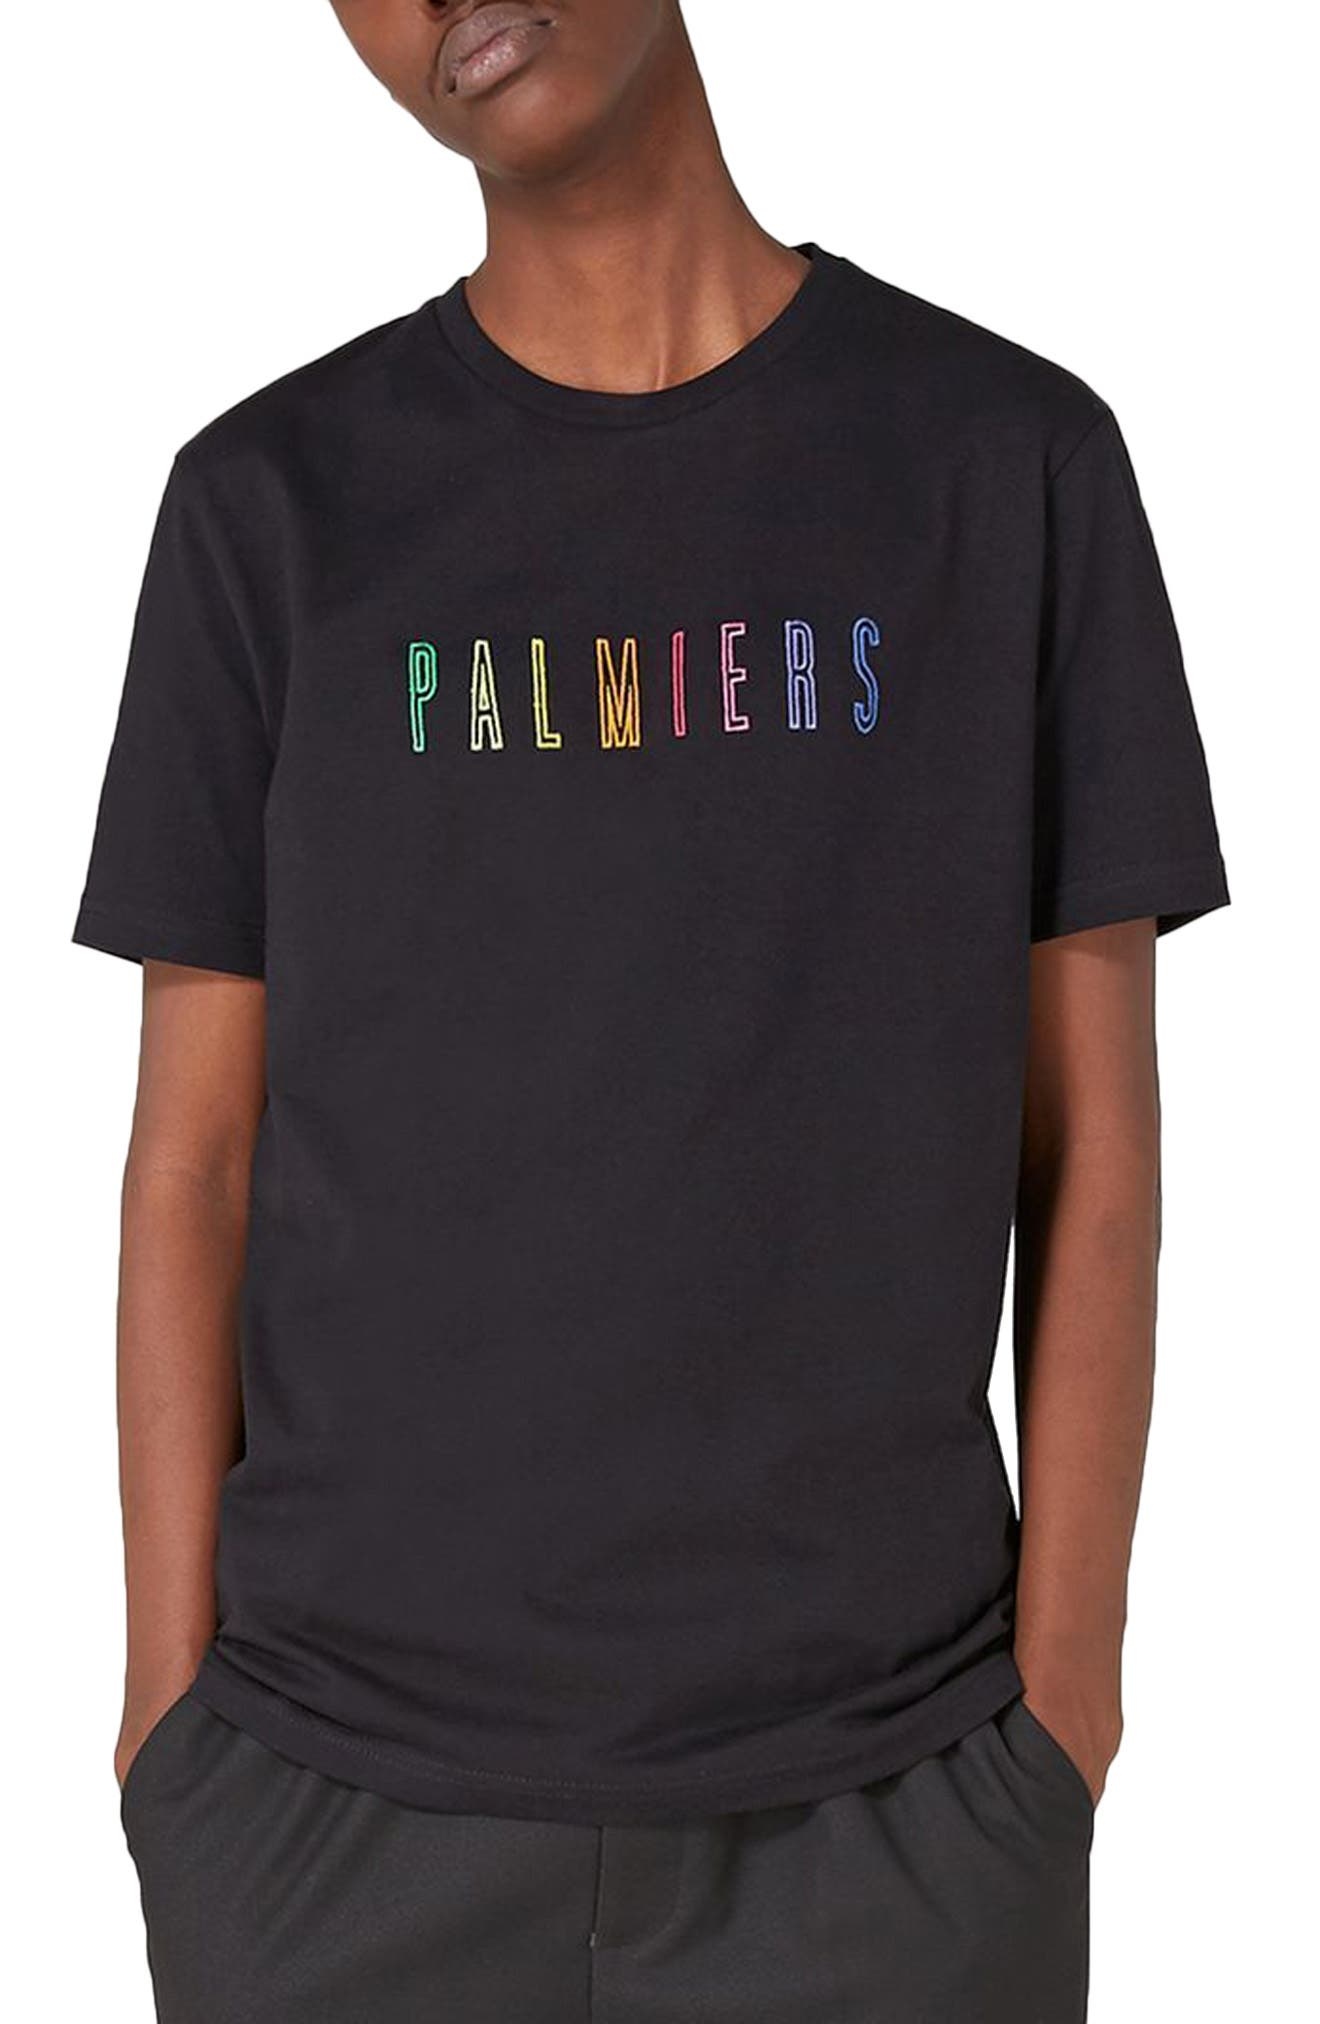 Palmiers Embroidered T-Shirt,                             Main thumbnail 1, color,